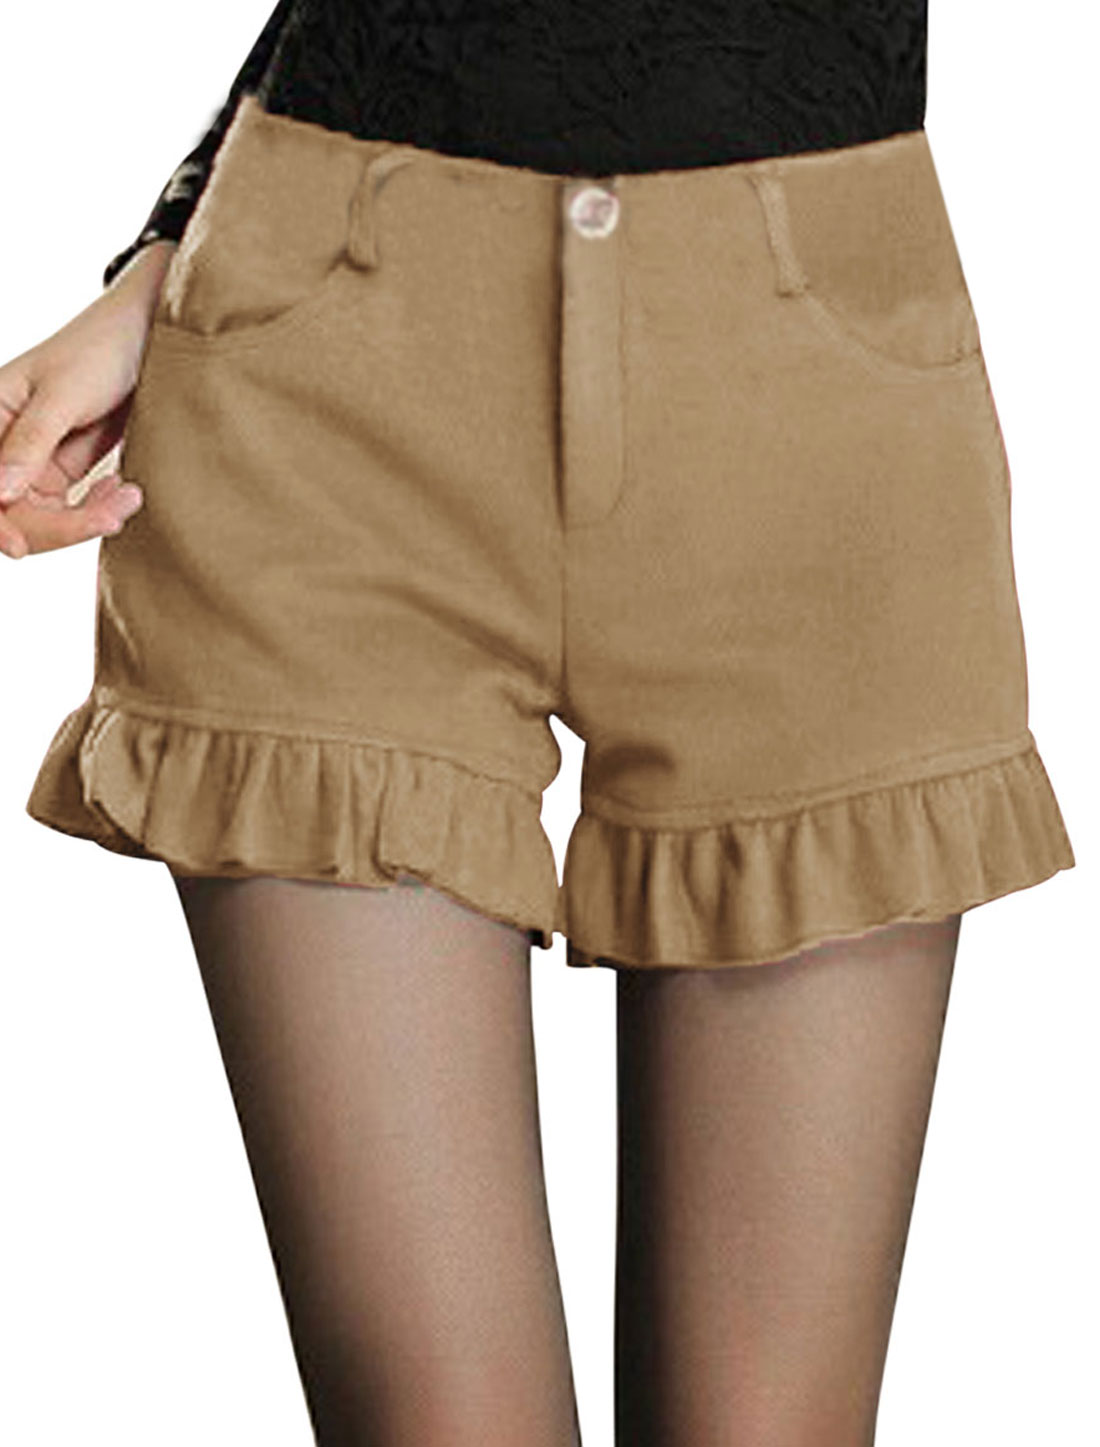 Women Narural Waist Zip Closure Casual Worsted Shorts Khaki M